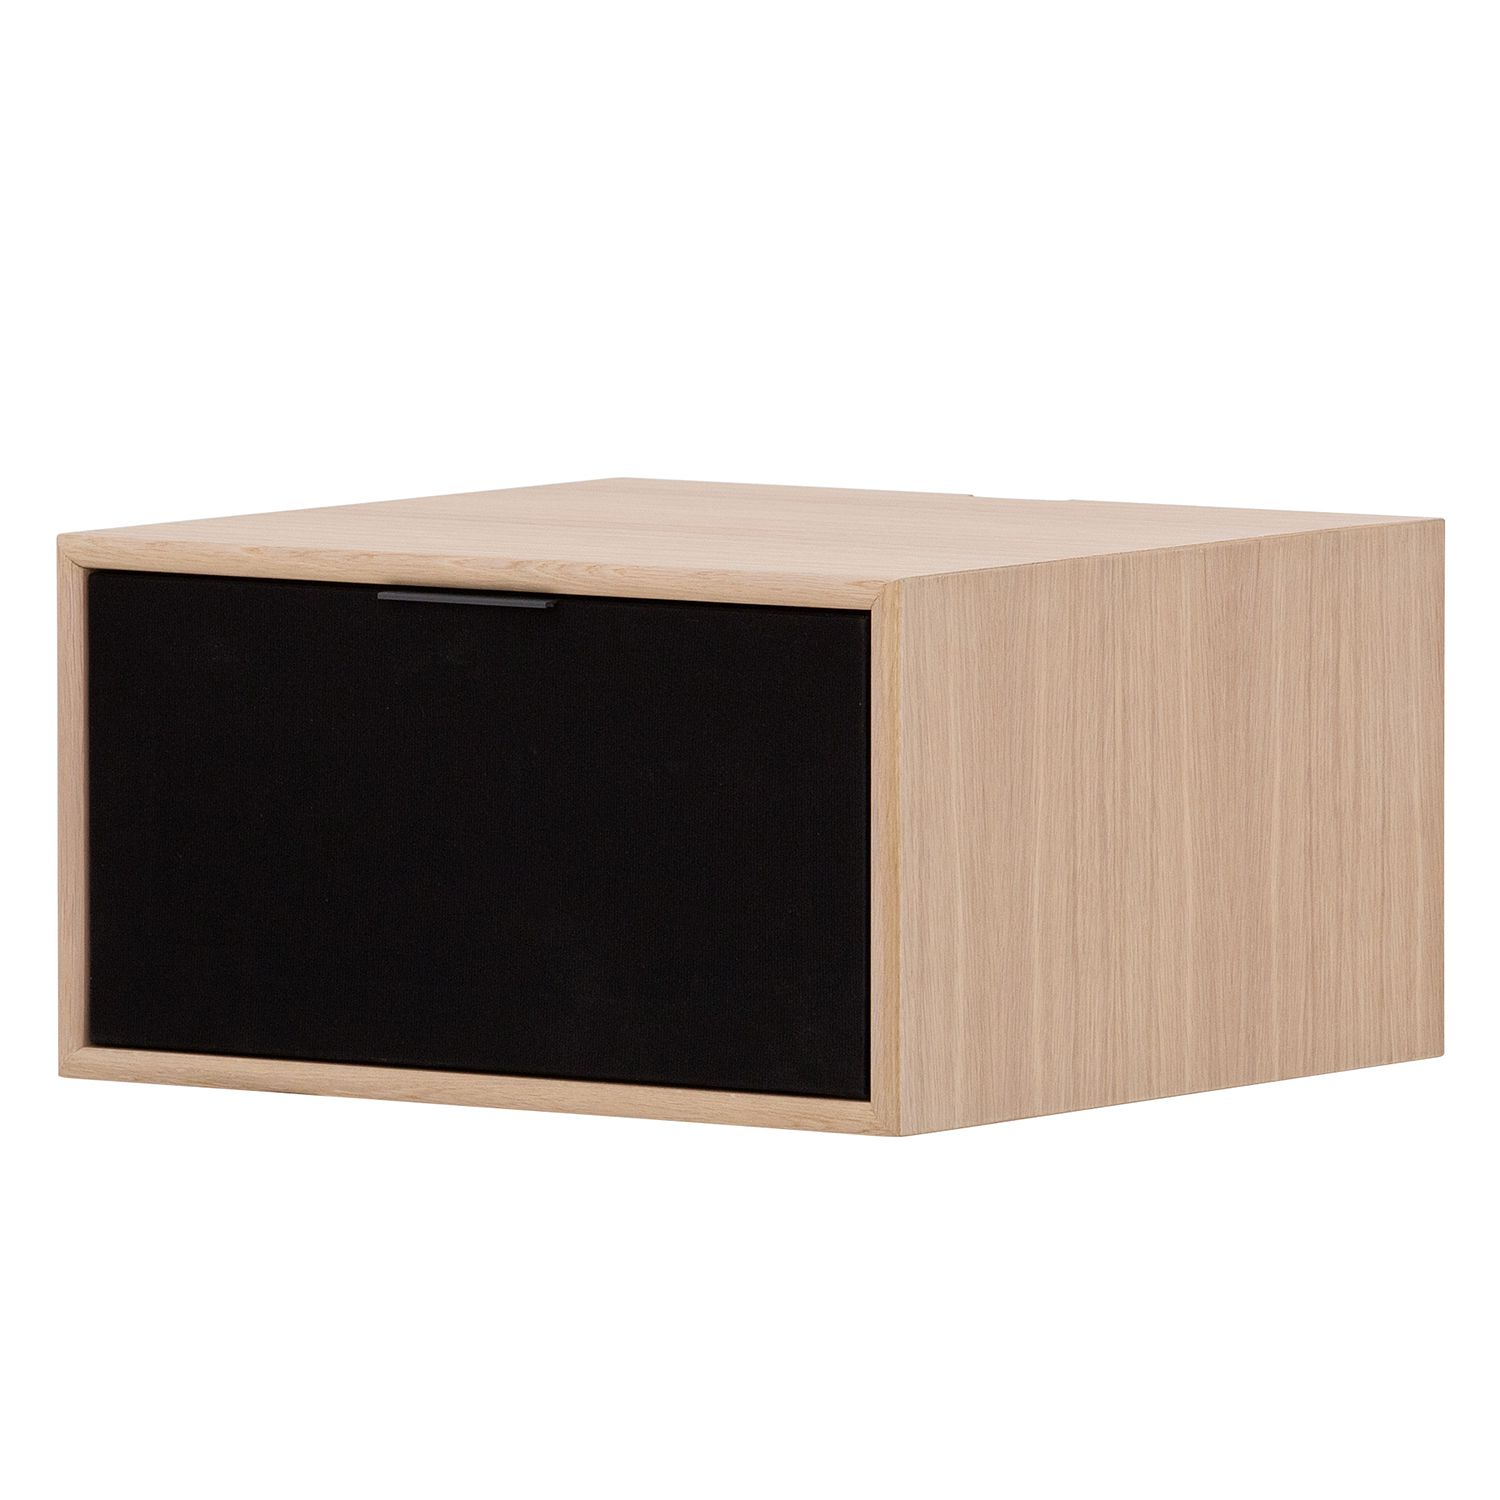 tv board danilo eiche dekor schwarz 40 cm g nstig. Black Bedroom Furniture Sets. Home Design Ideas